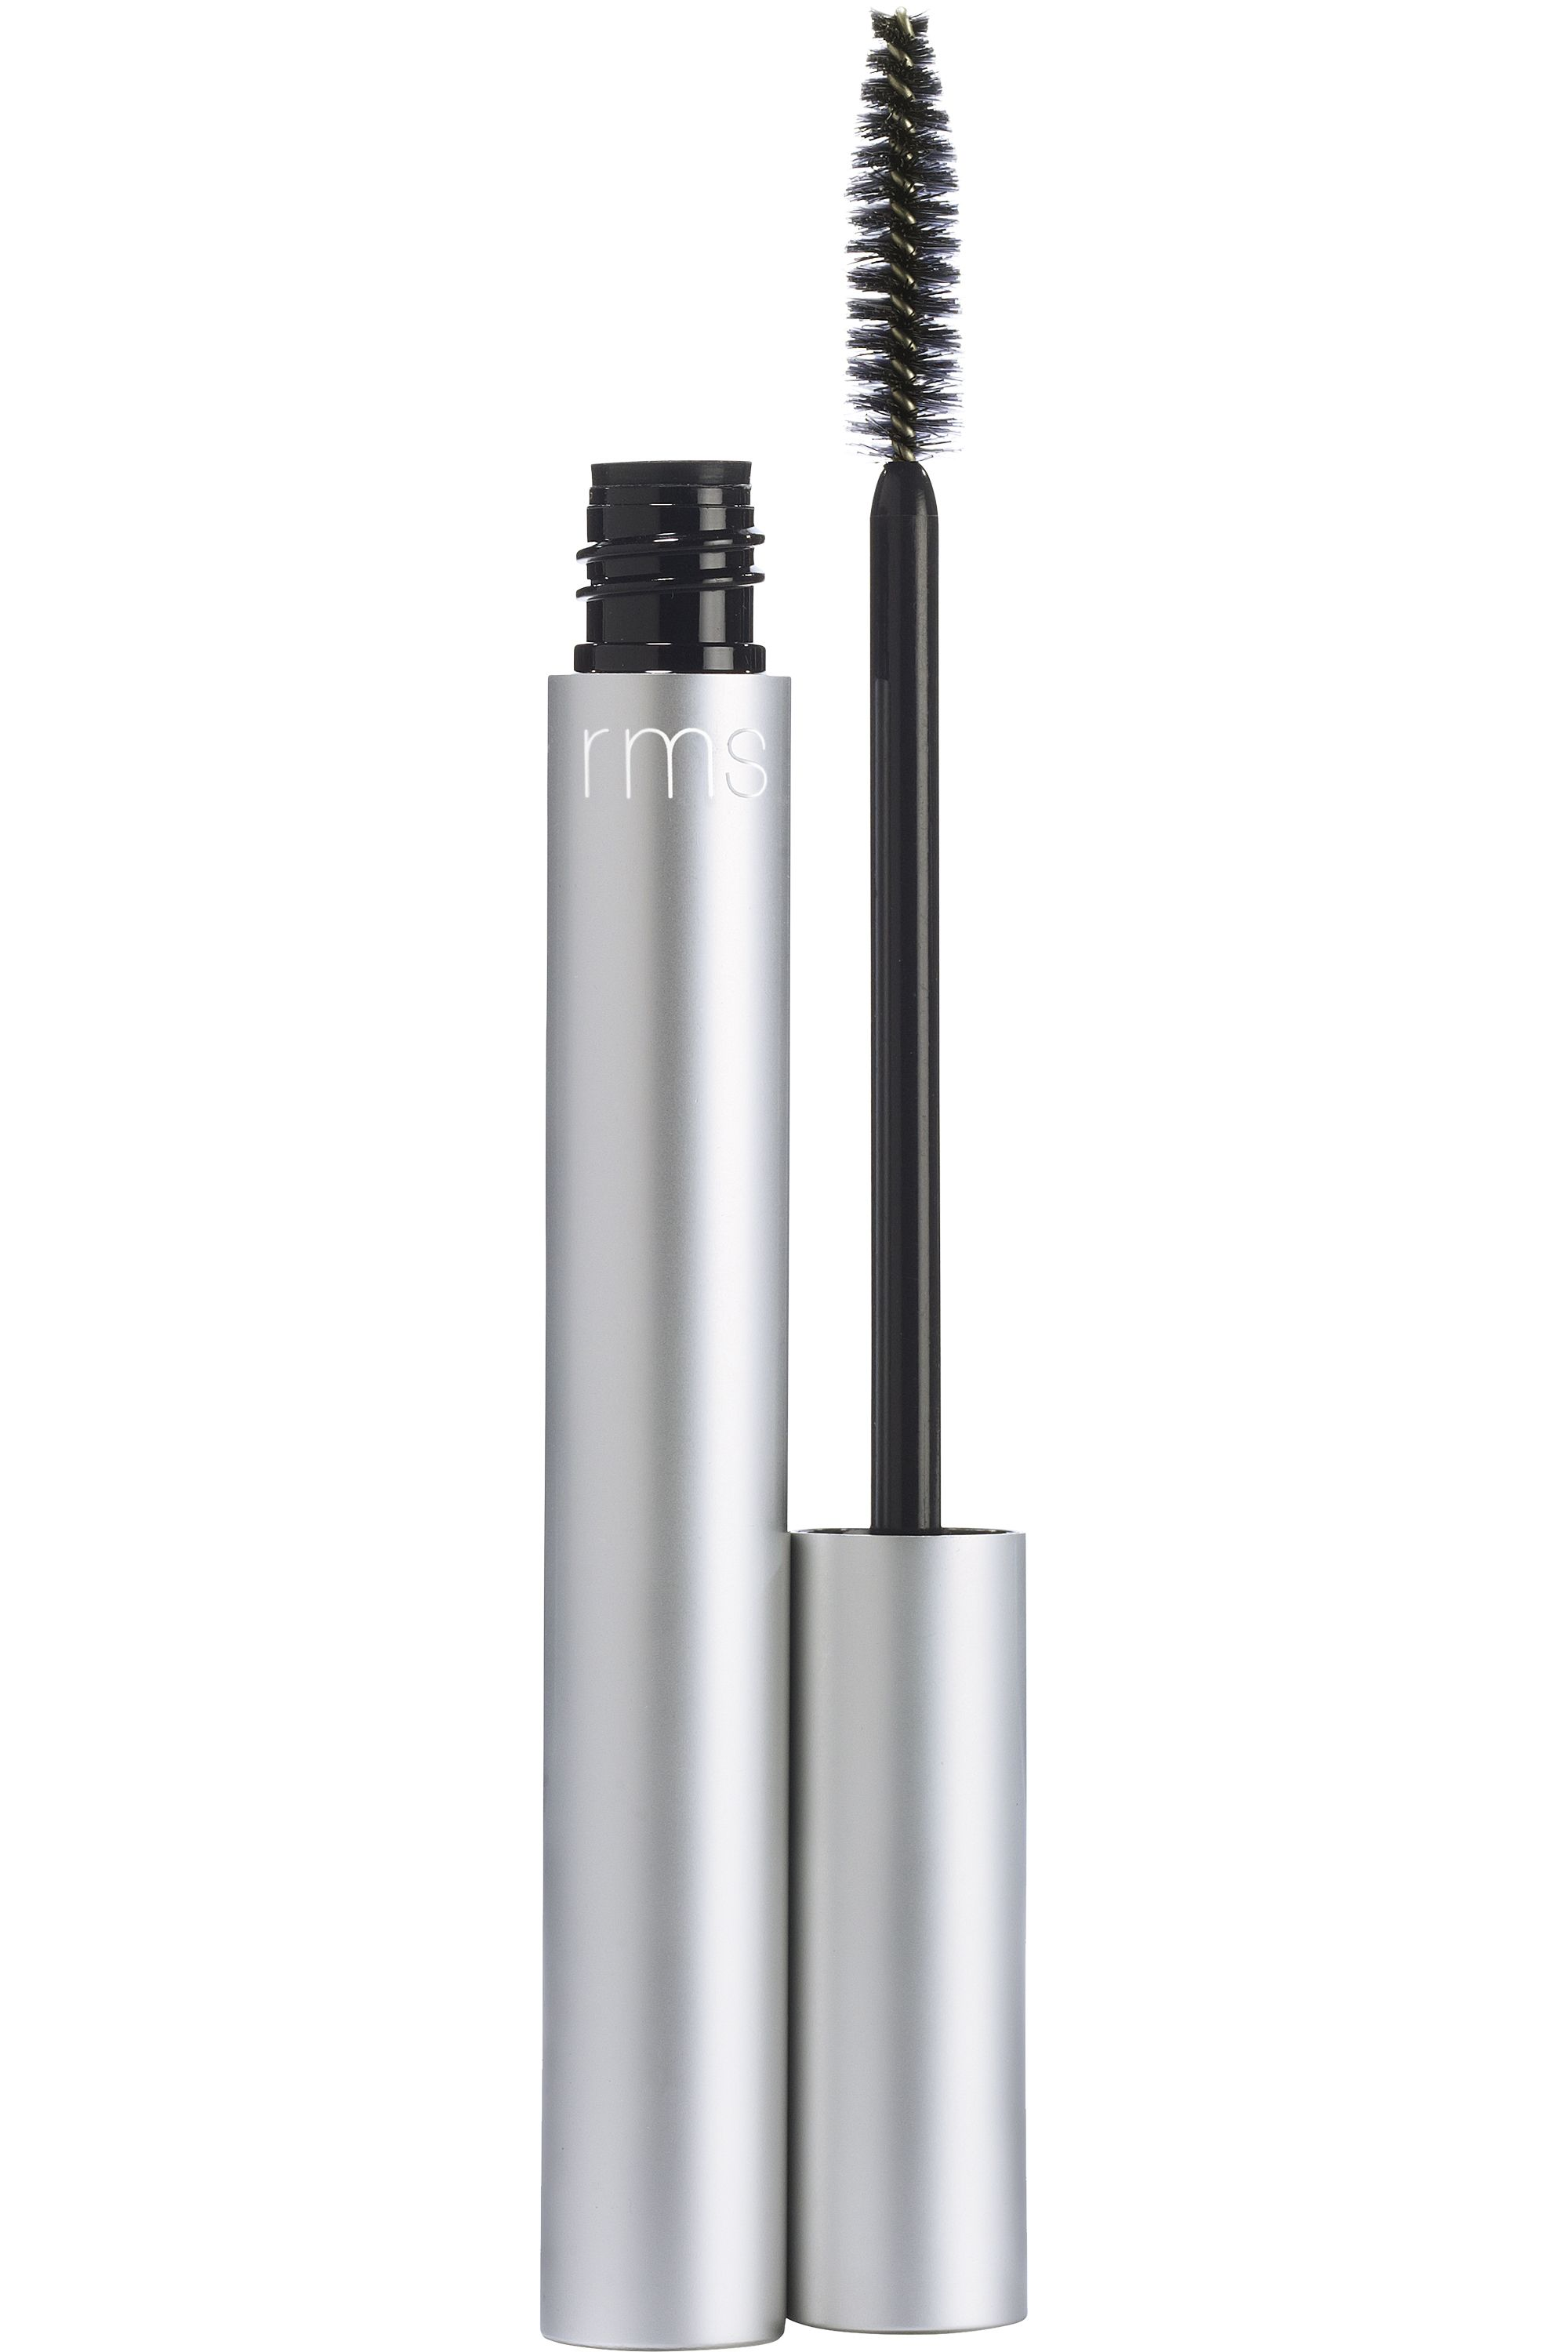 Blissim : RMS Beauty - Mascara Volumateur - Mascara Volumateur